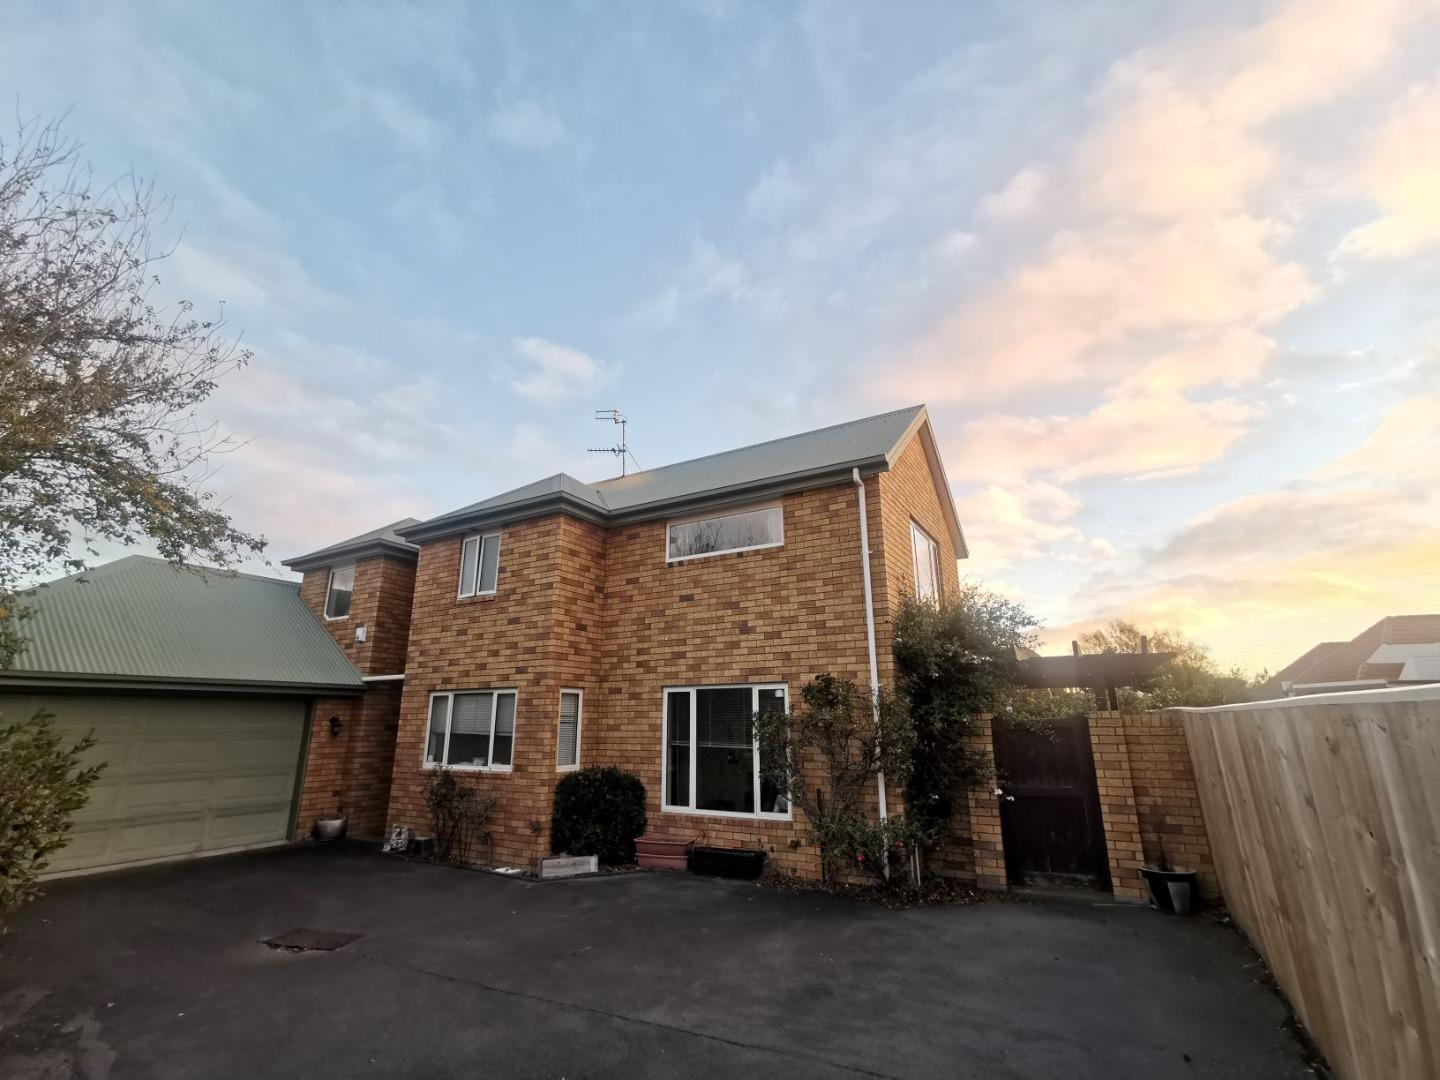 4 Bedroom Townhouse Close to Varsity!